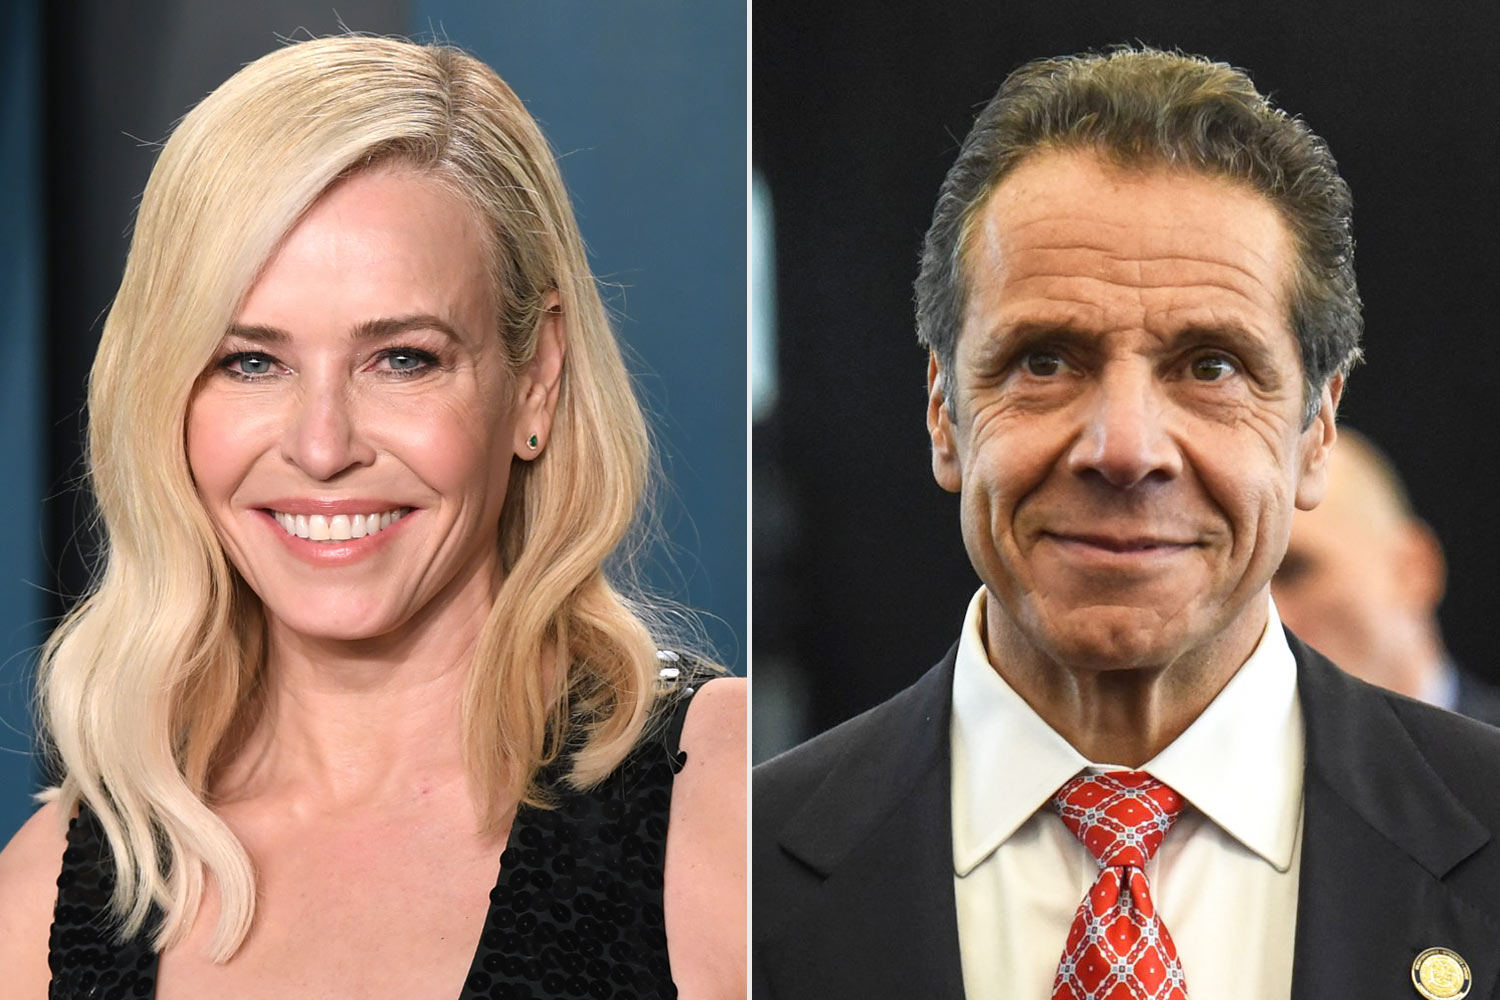 Chelsea handler and Andrew Cuomo